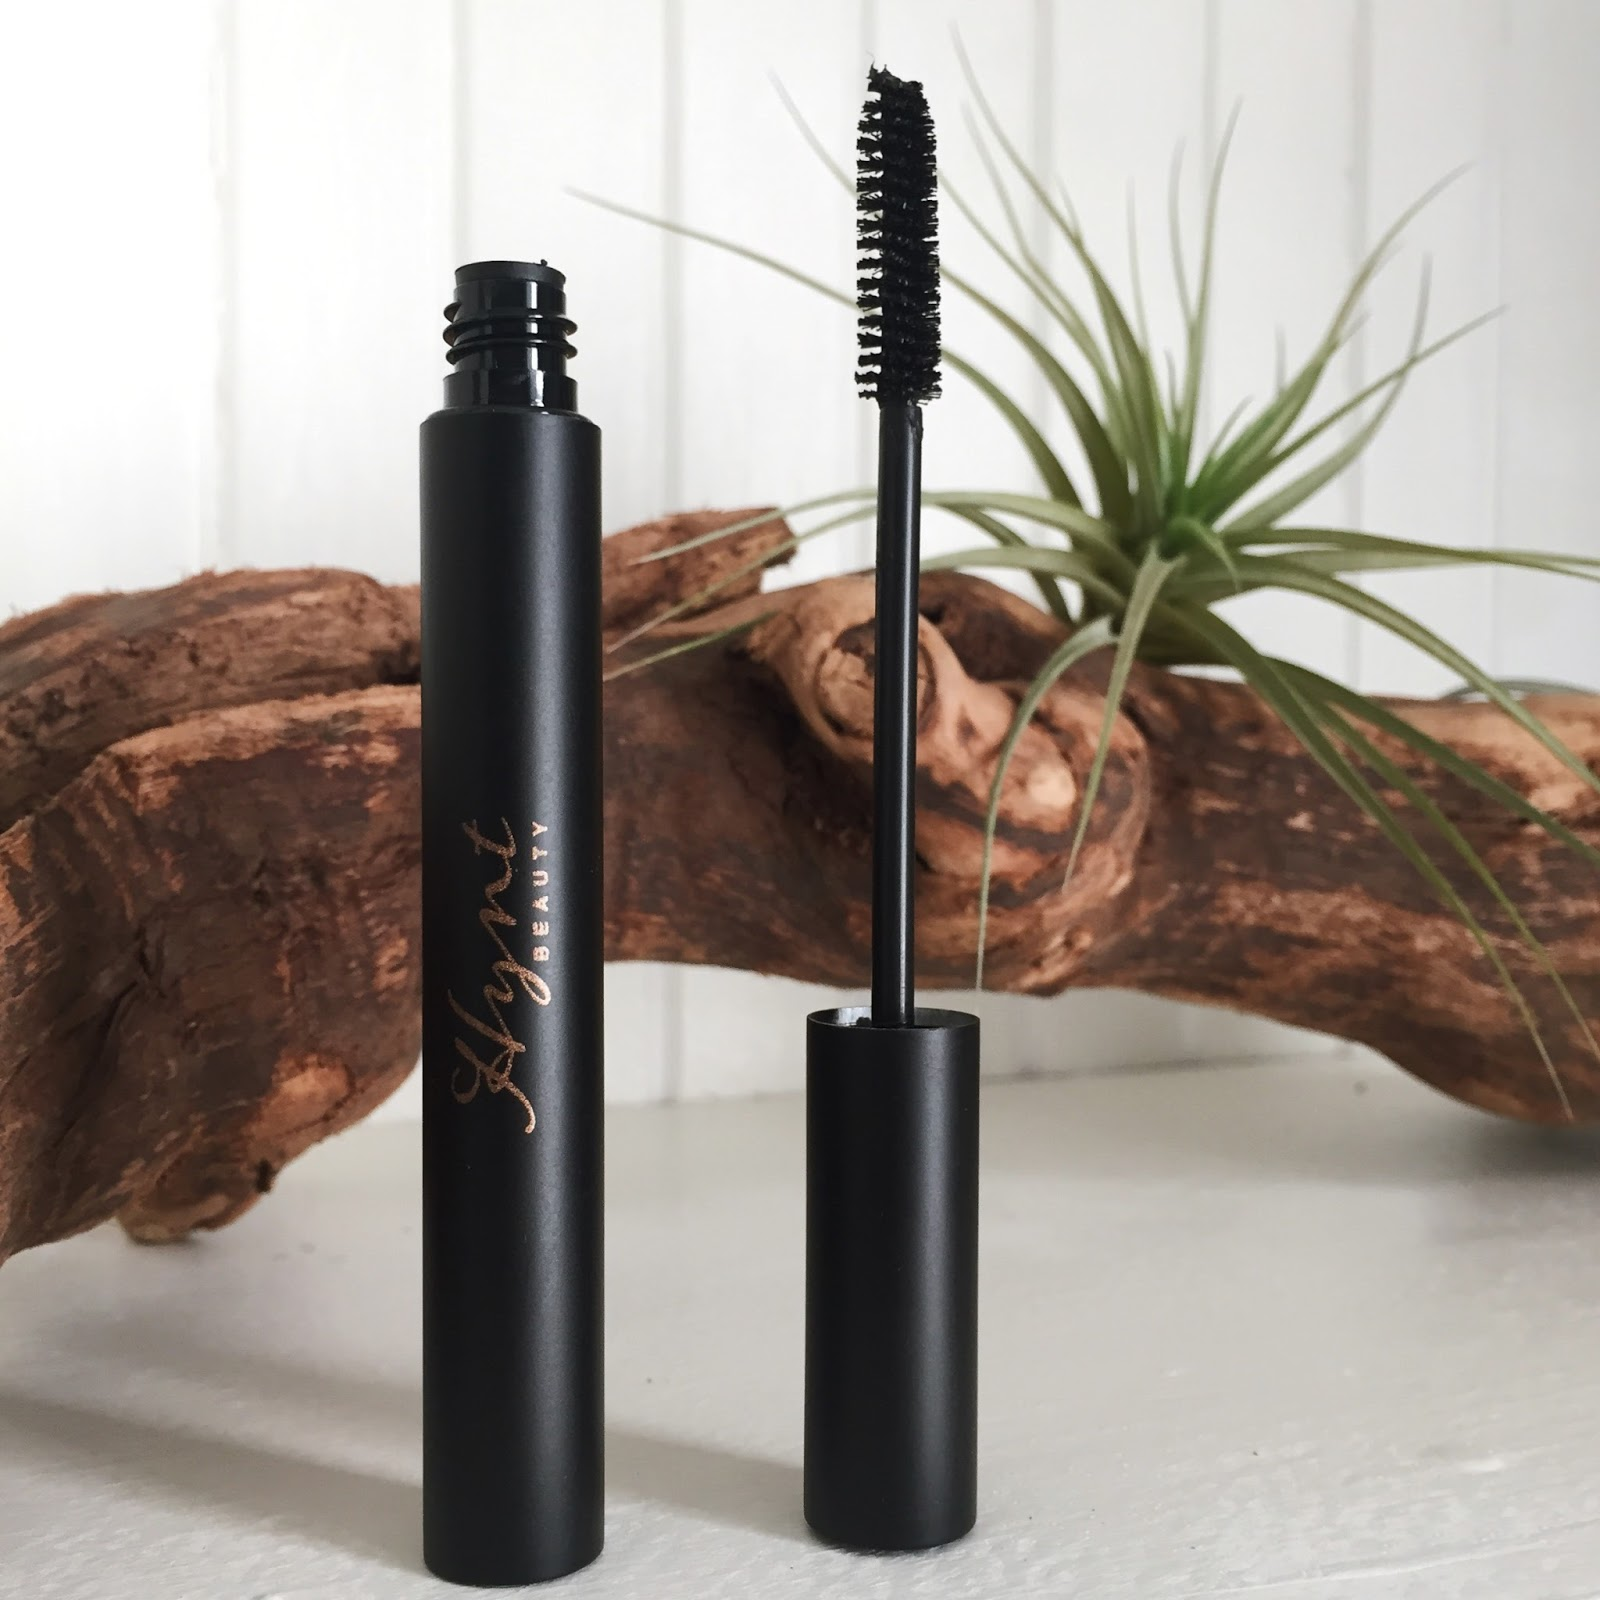 Hynt Beauty Nocturne Mascara Review